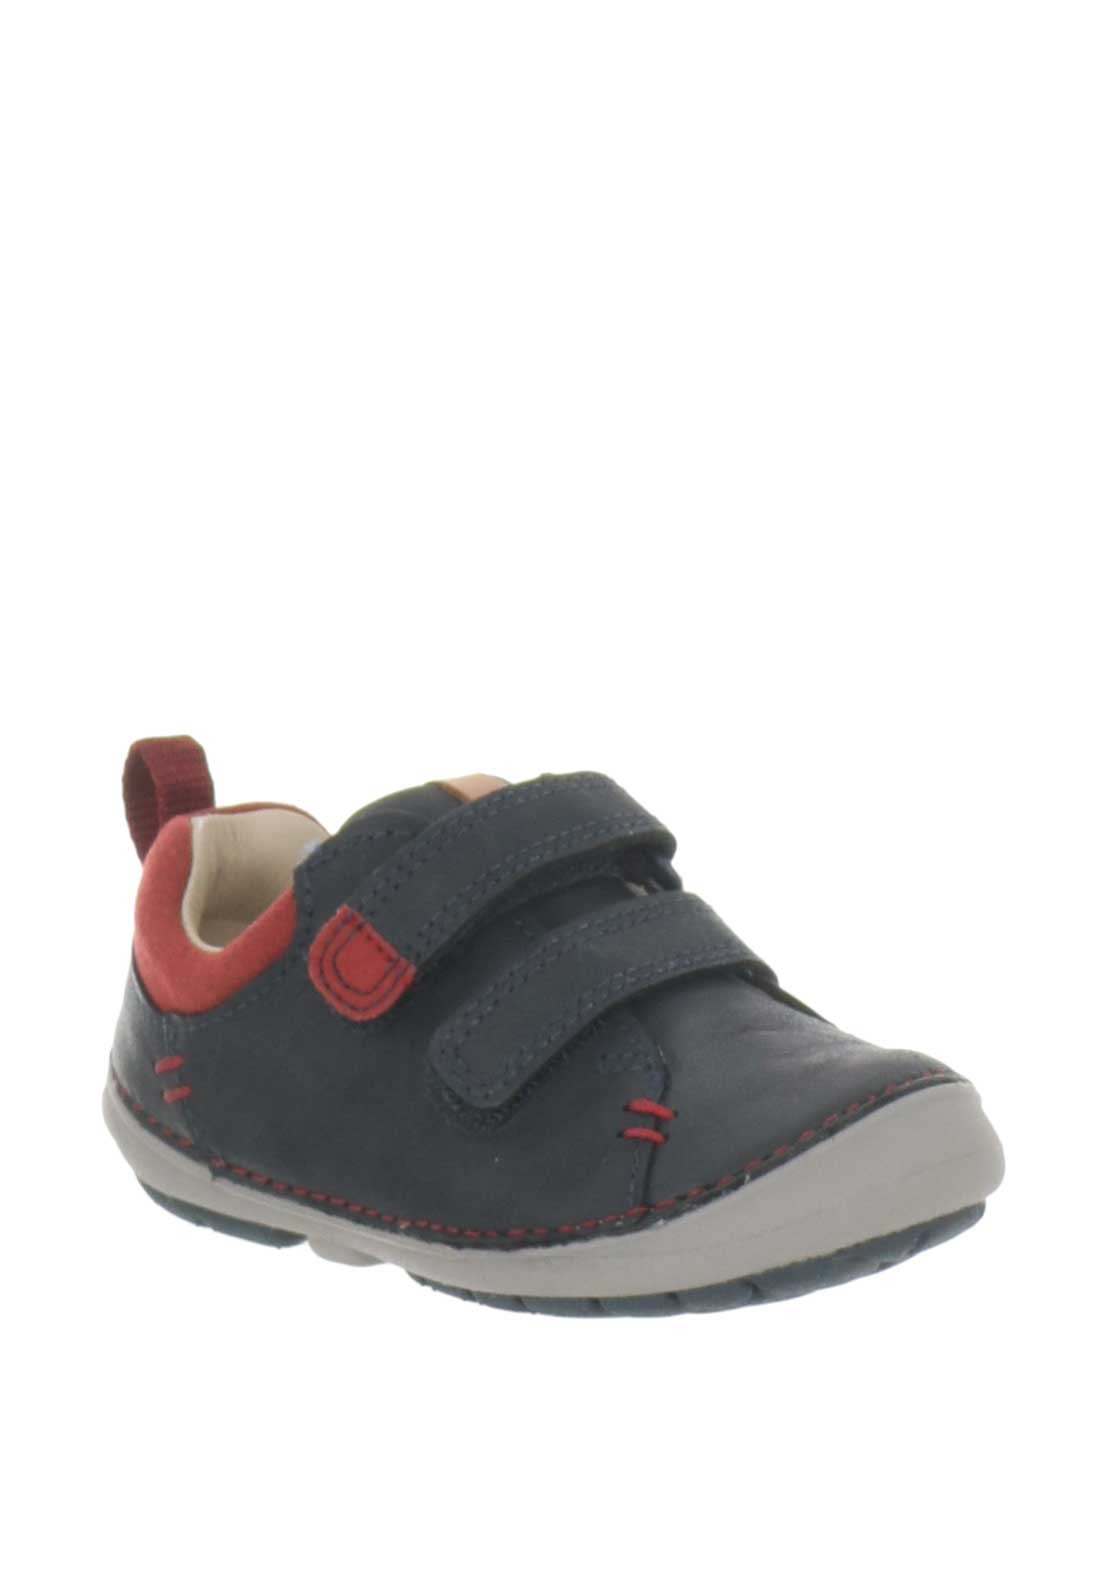 Ckarks Baby Shoes